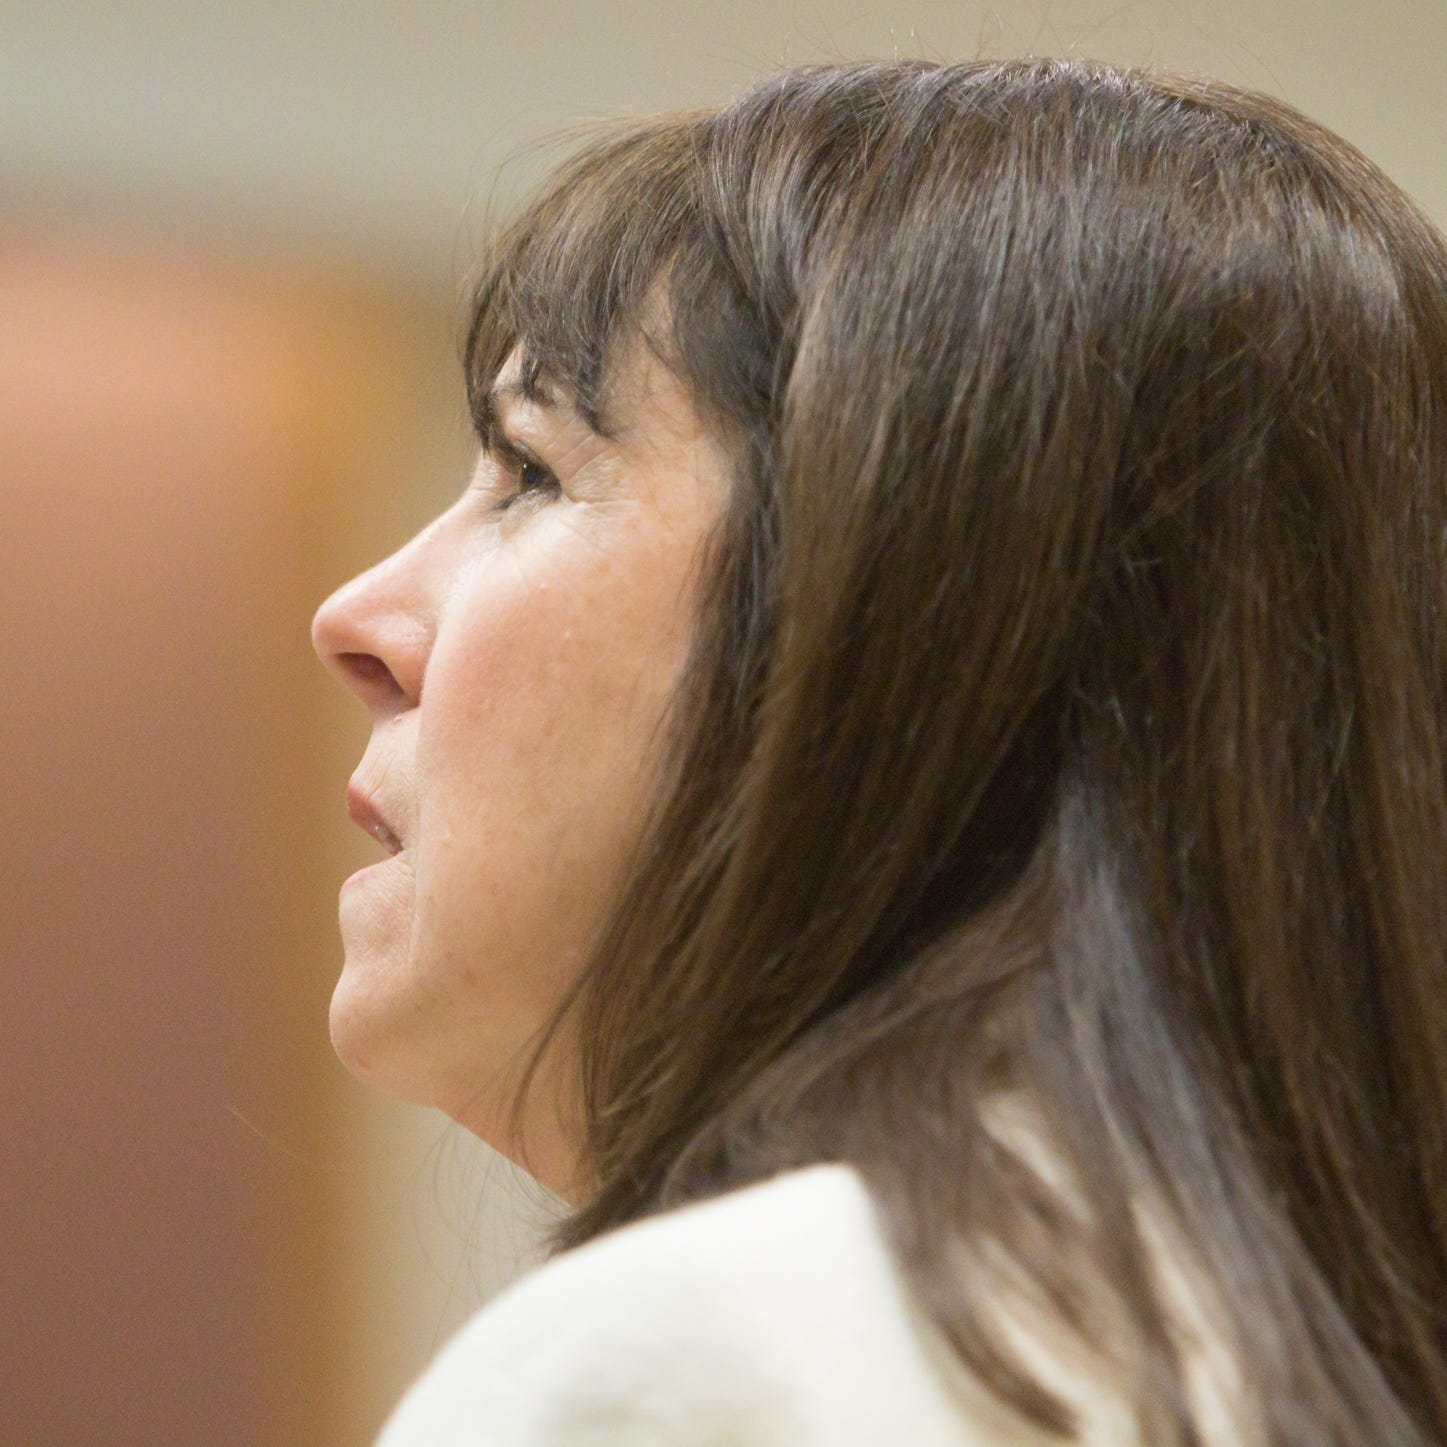 Eaton County judge denies citizens grand jury inquiry into Judge Theresa Brennan